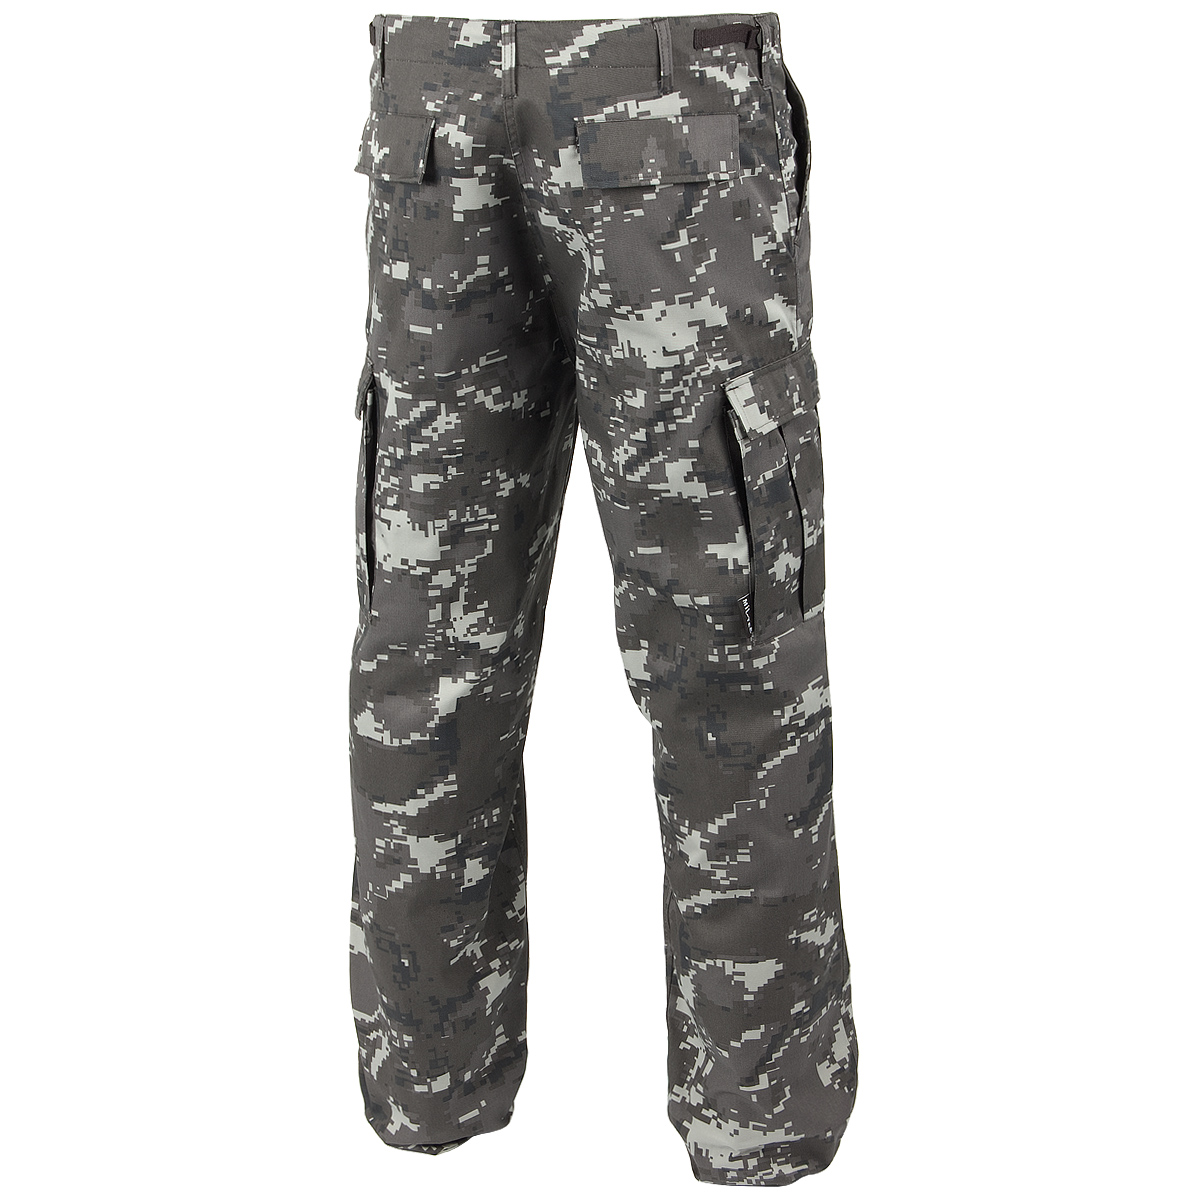 Pantalon De Survêtement Nike Tech Fleece 545343-066